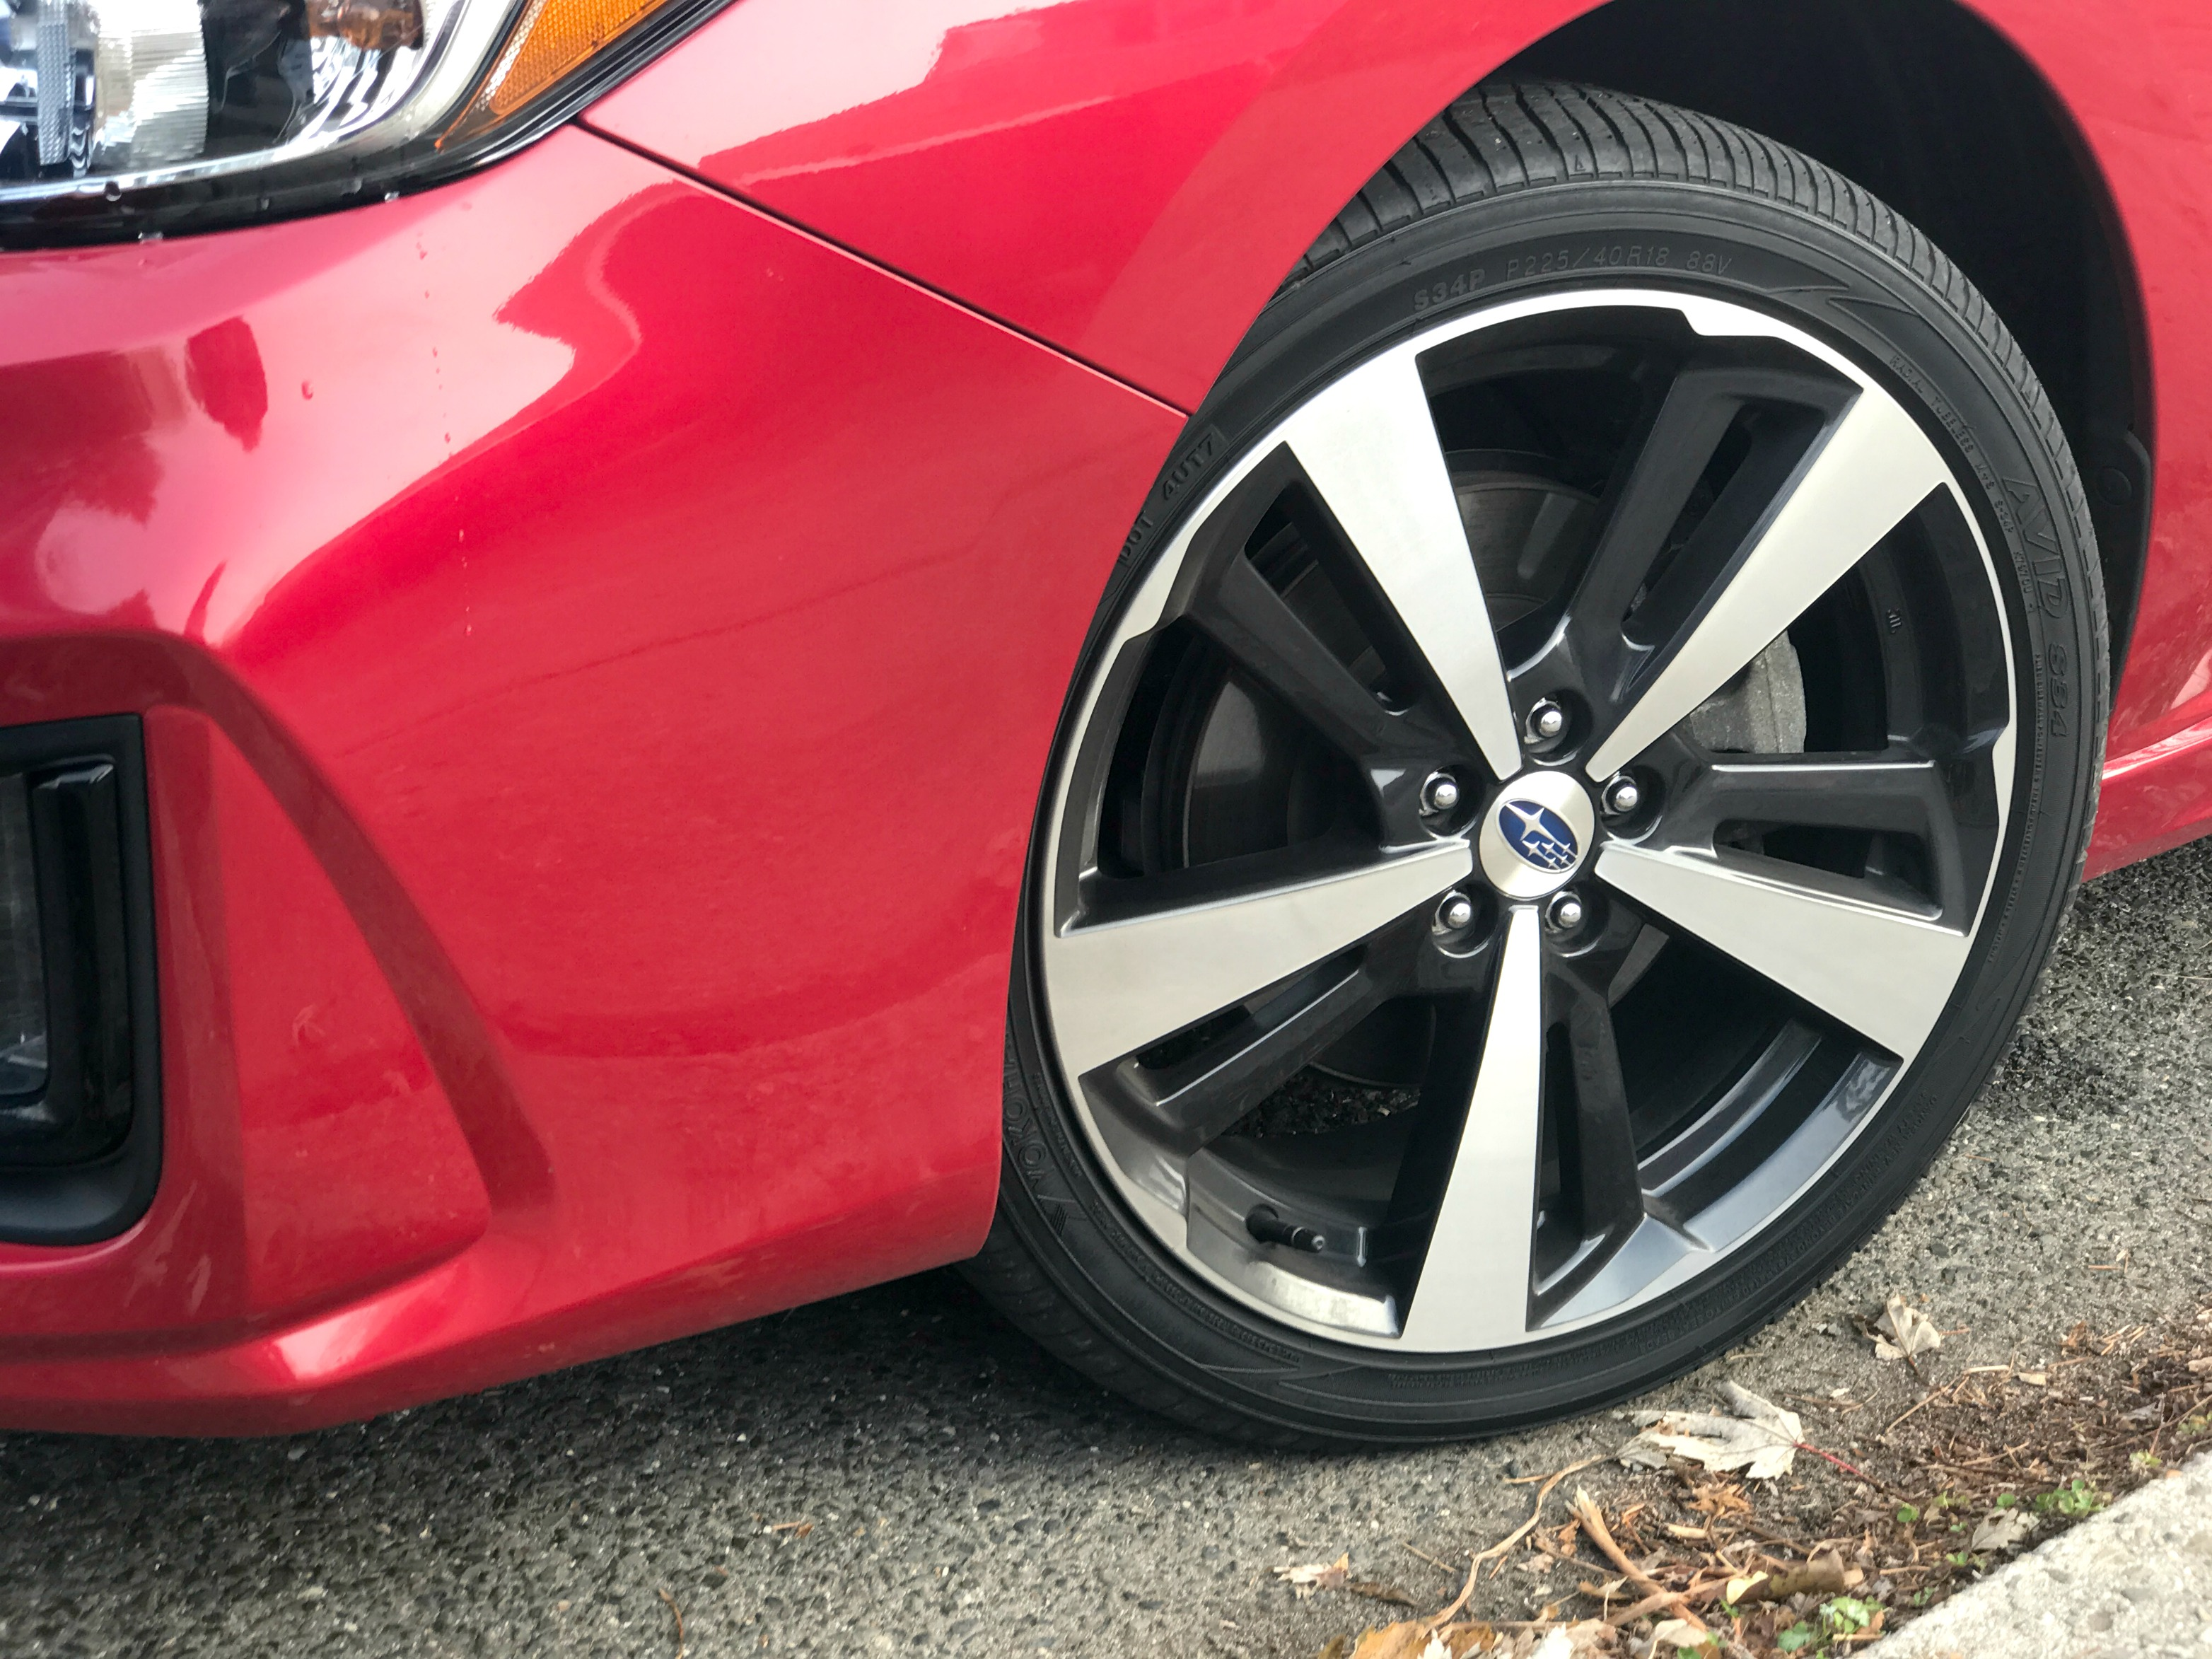 Tires of a red compact AWD sedan